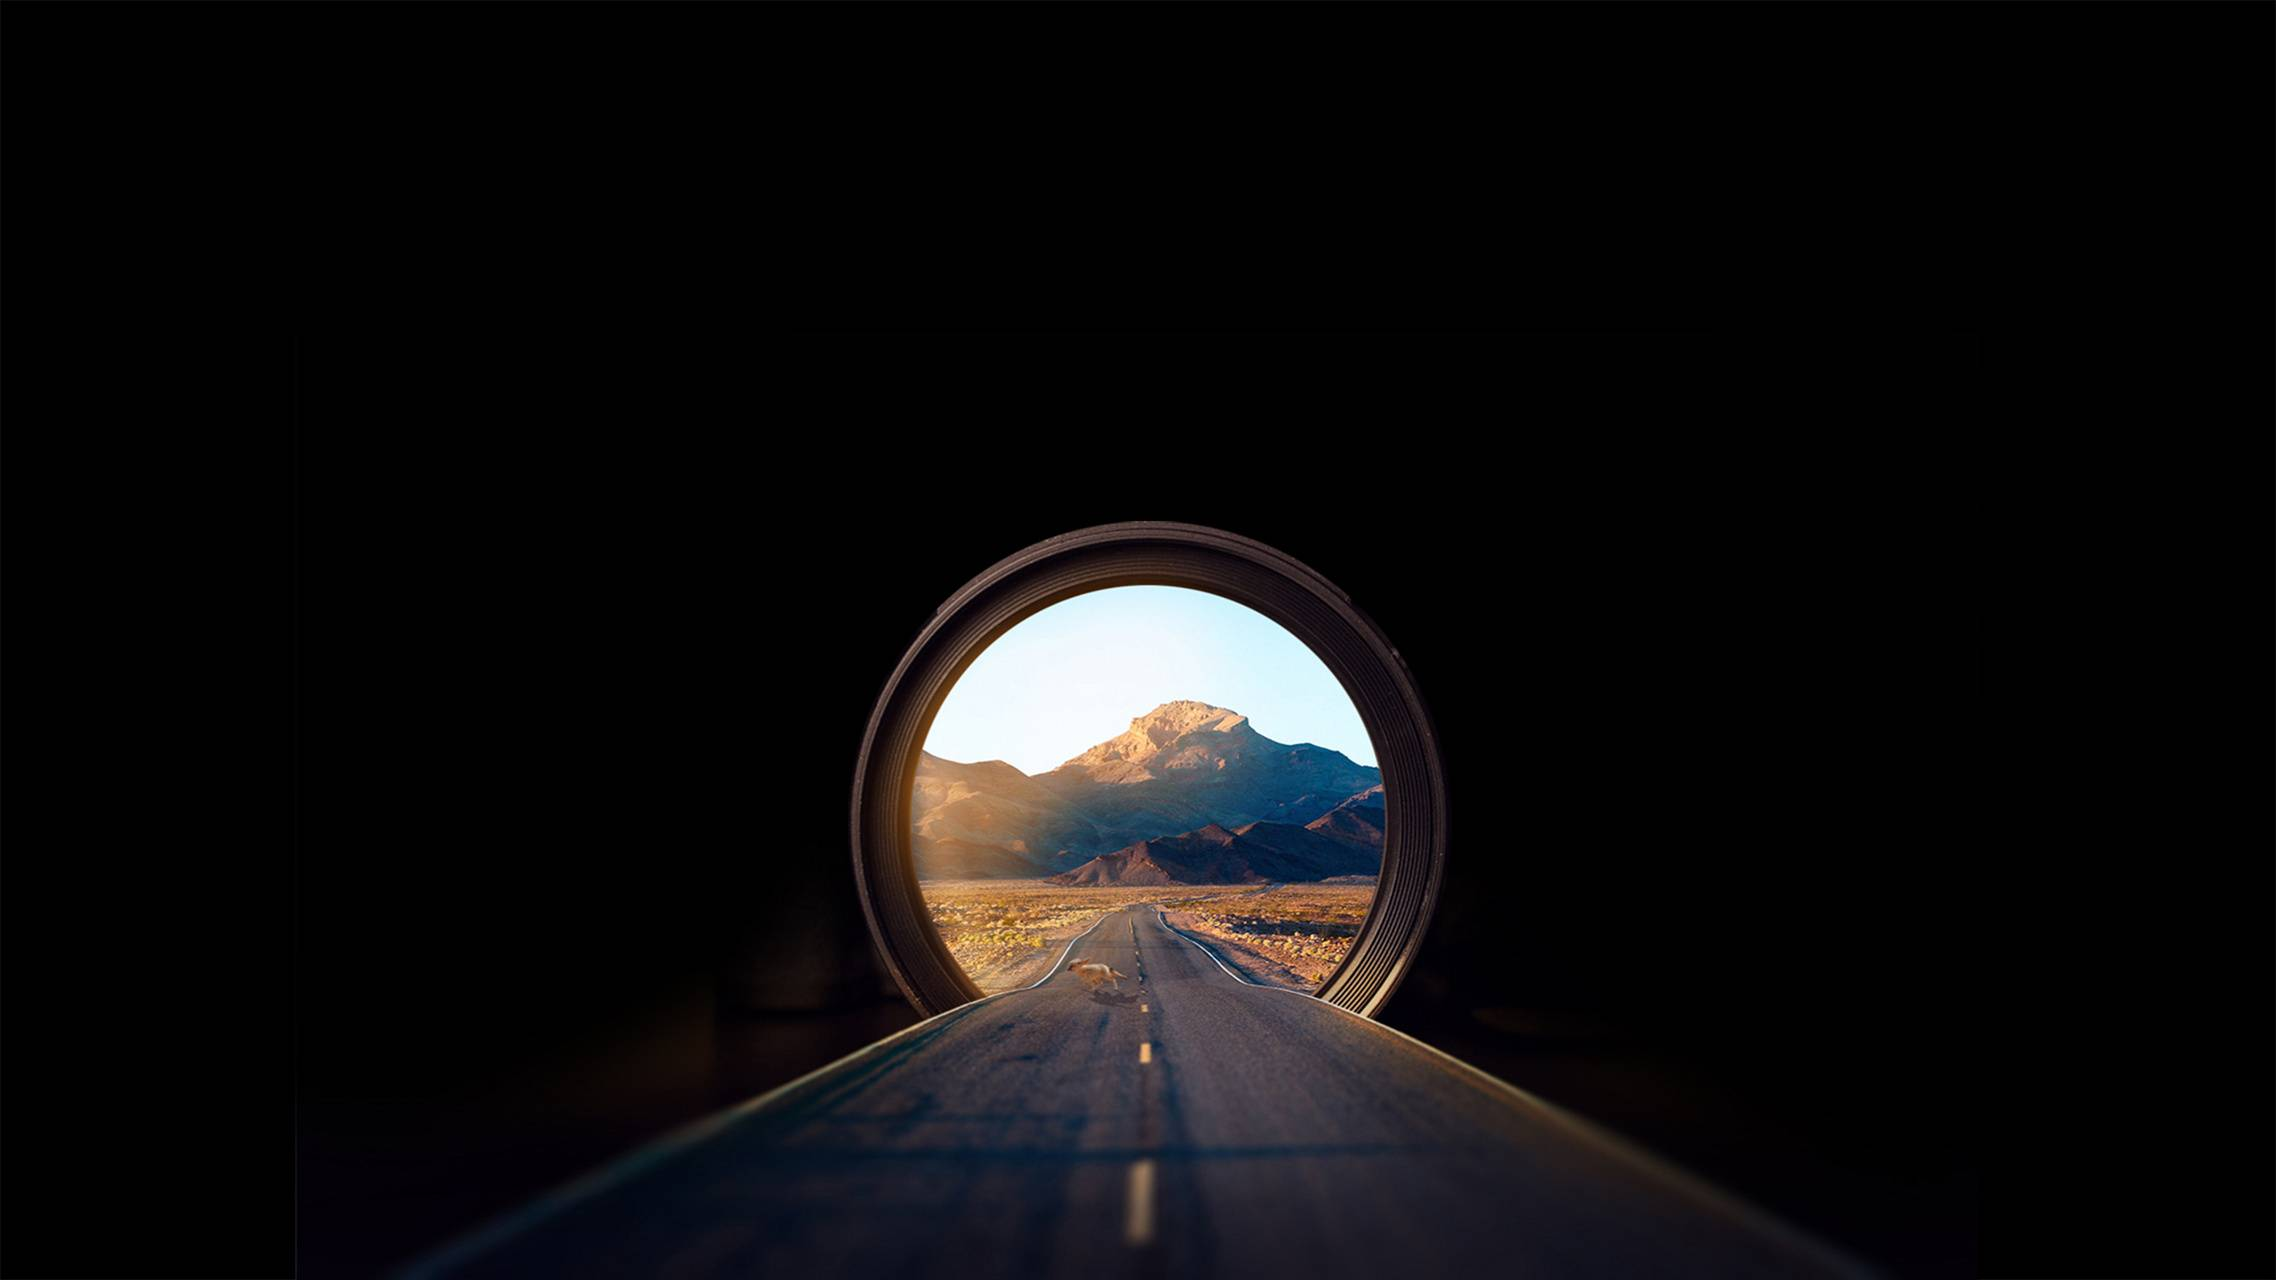 Road in the hole